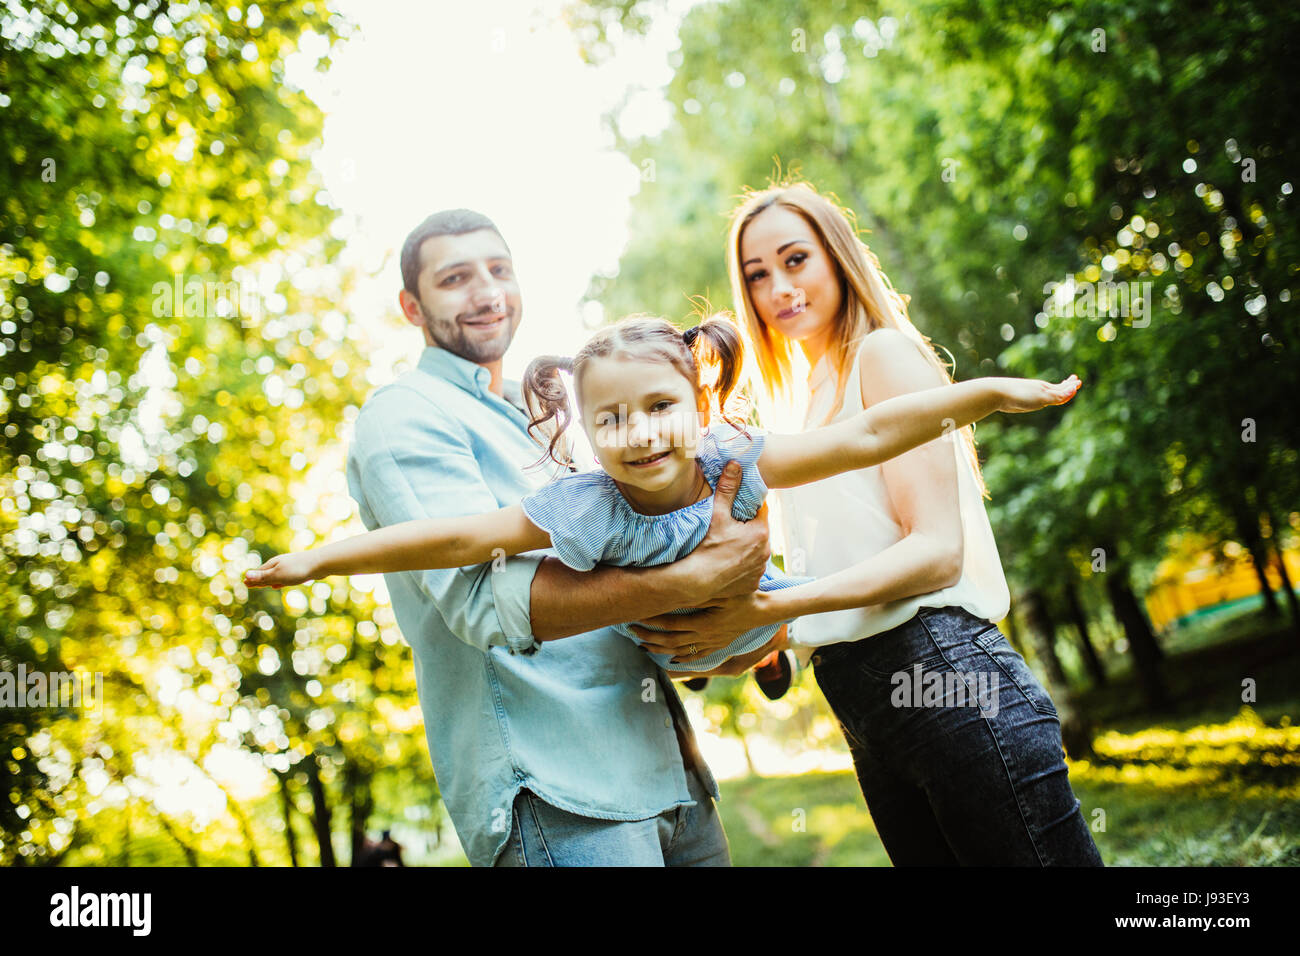 Happy family with one child having fun together in summer city park Stock Photo